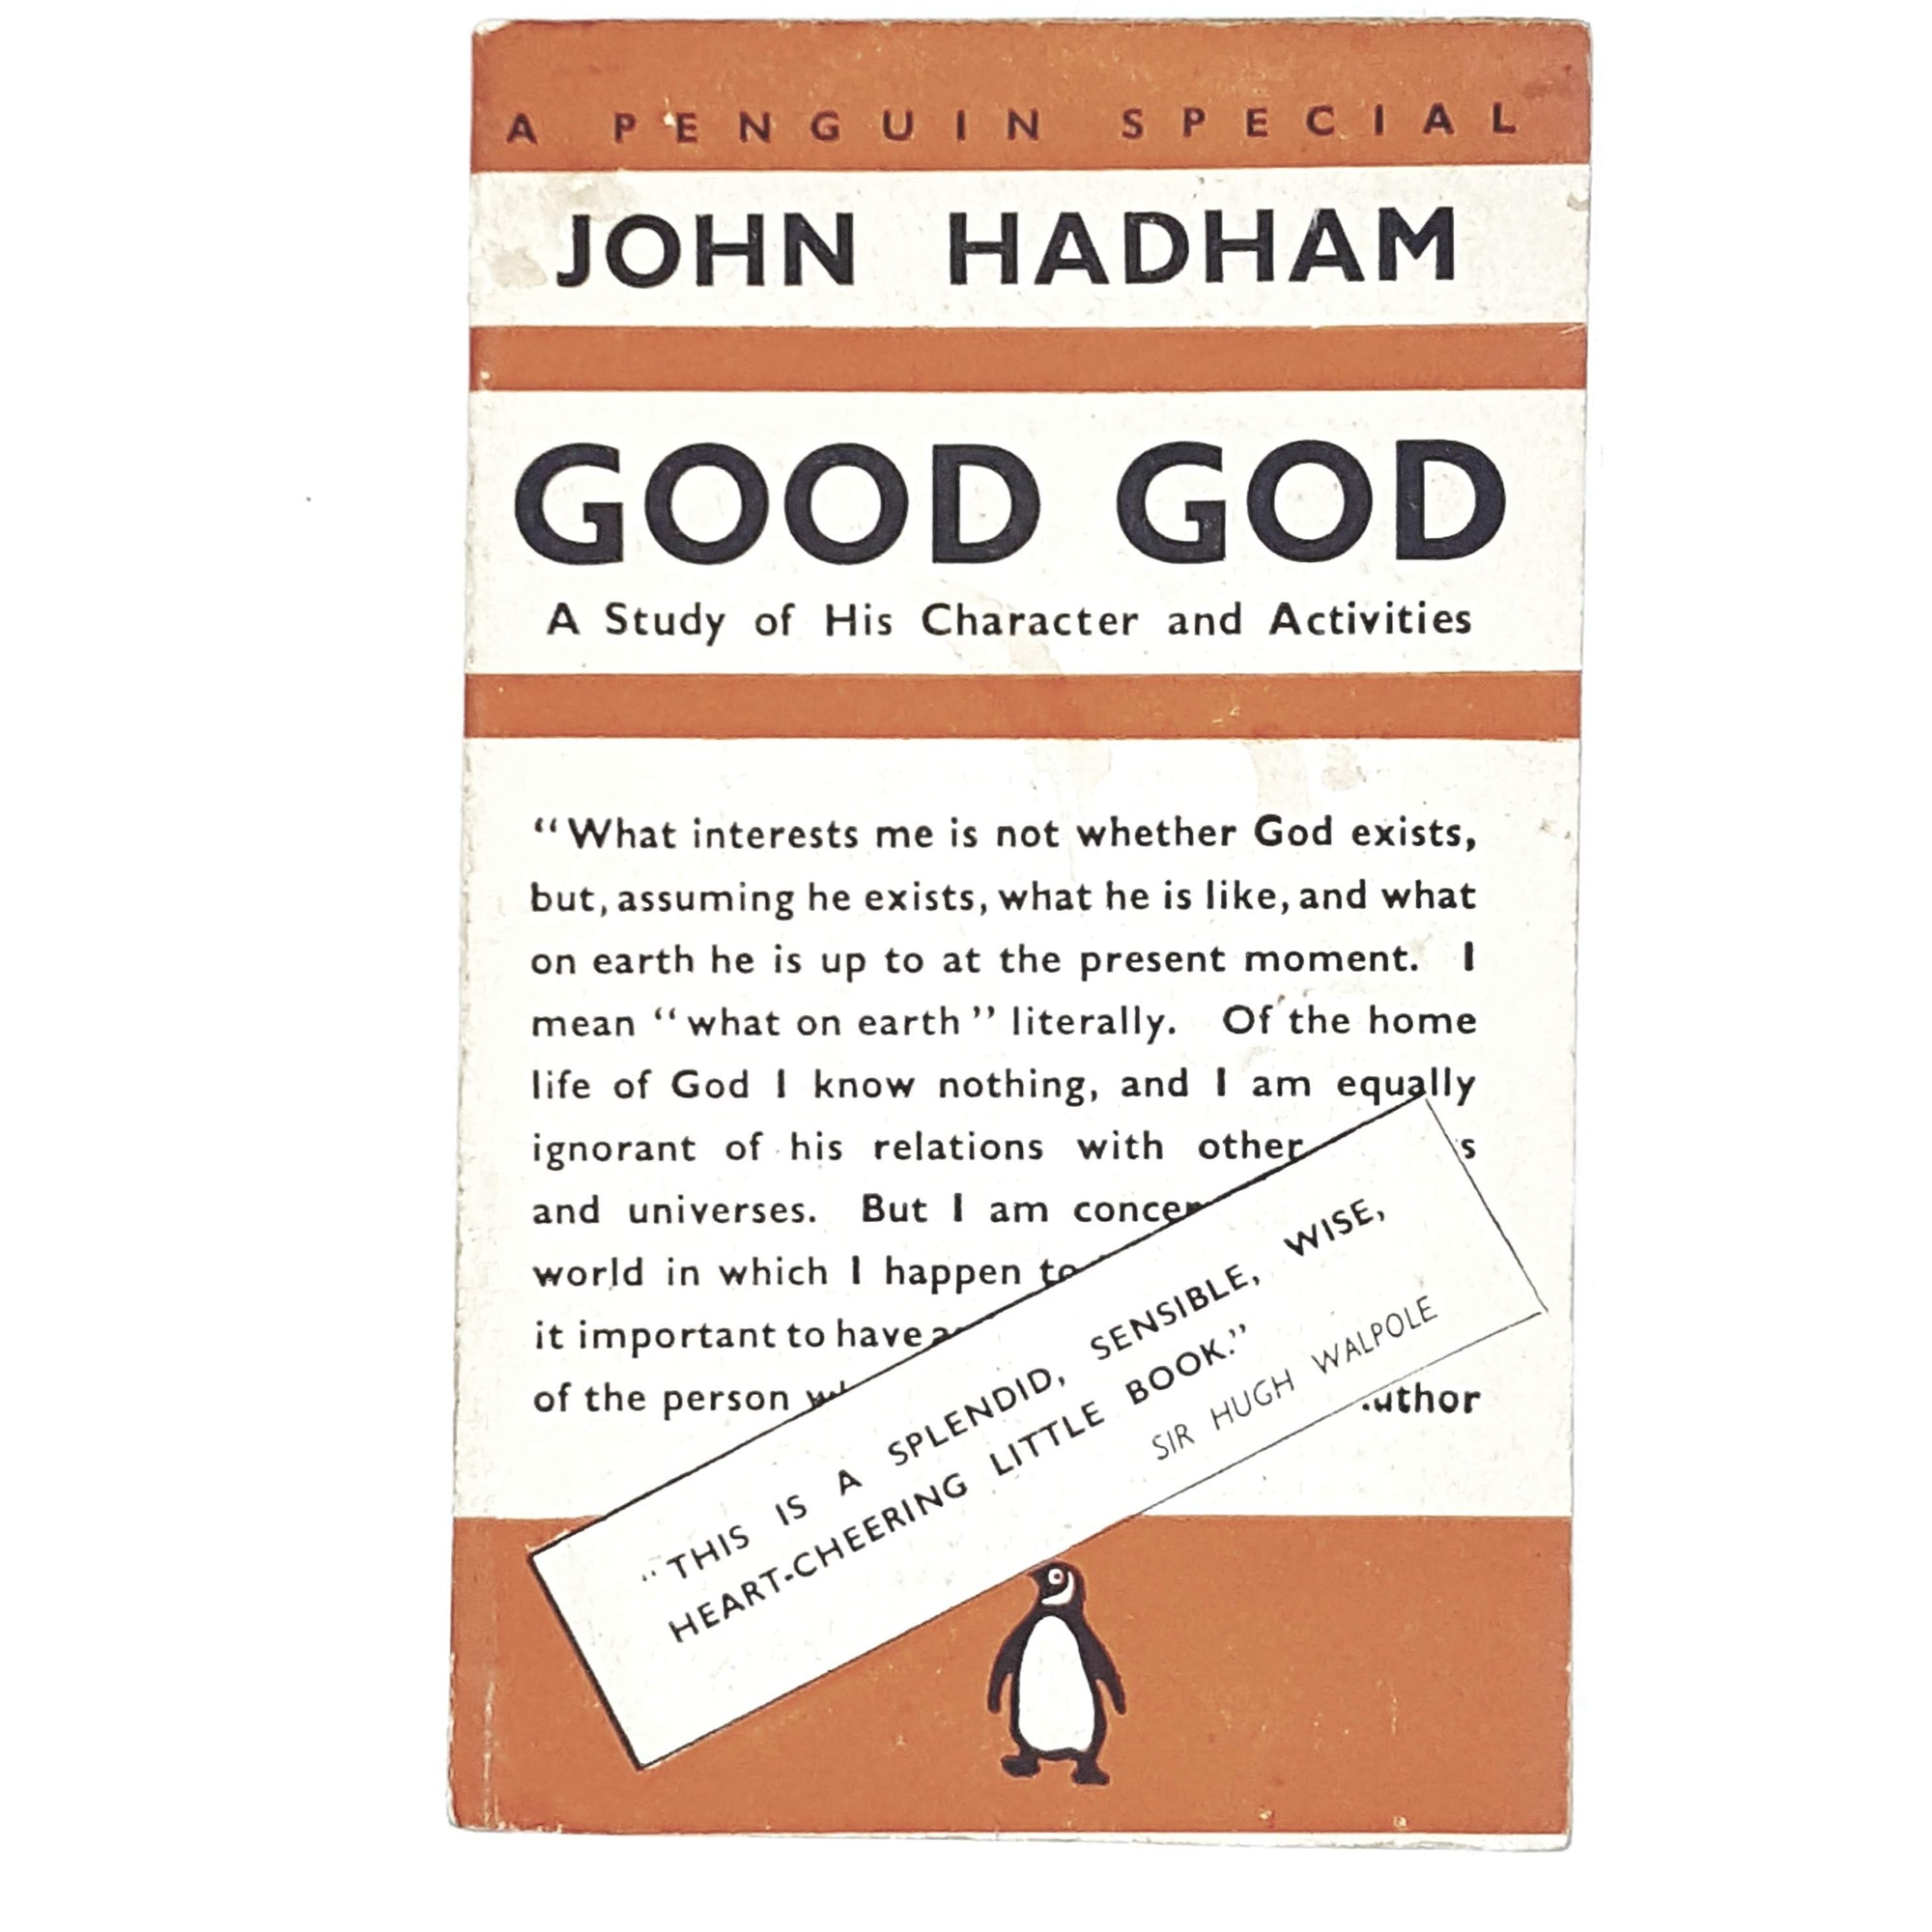 Vintage Penguin John Hadham's Good God 1941